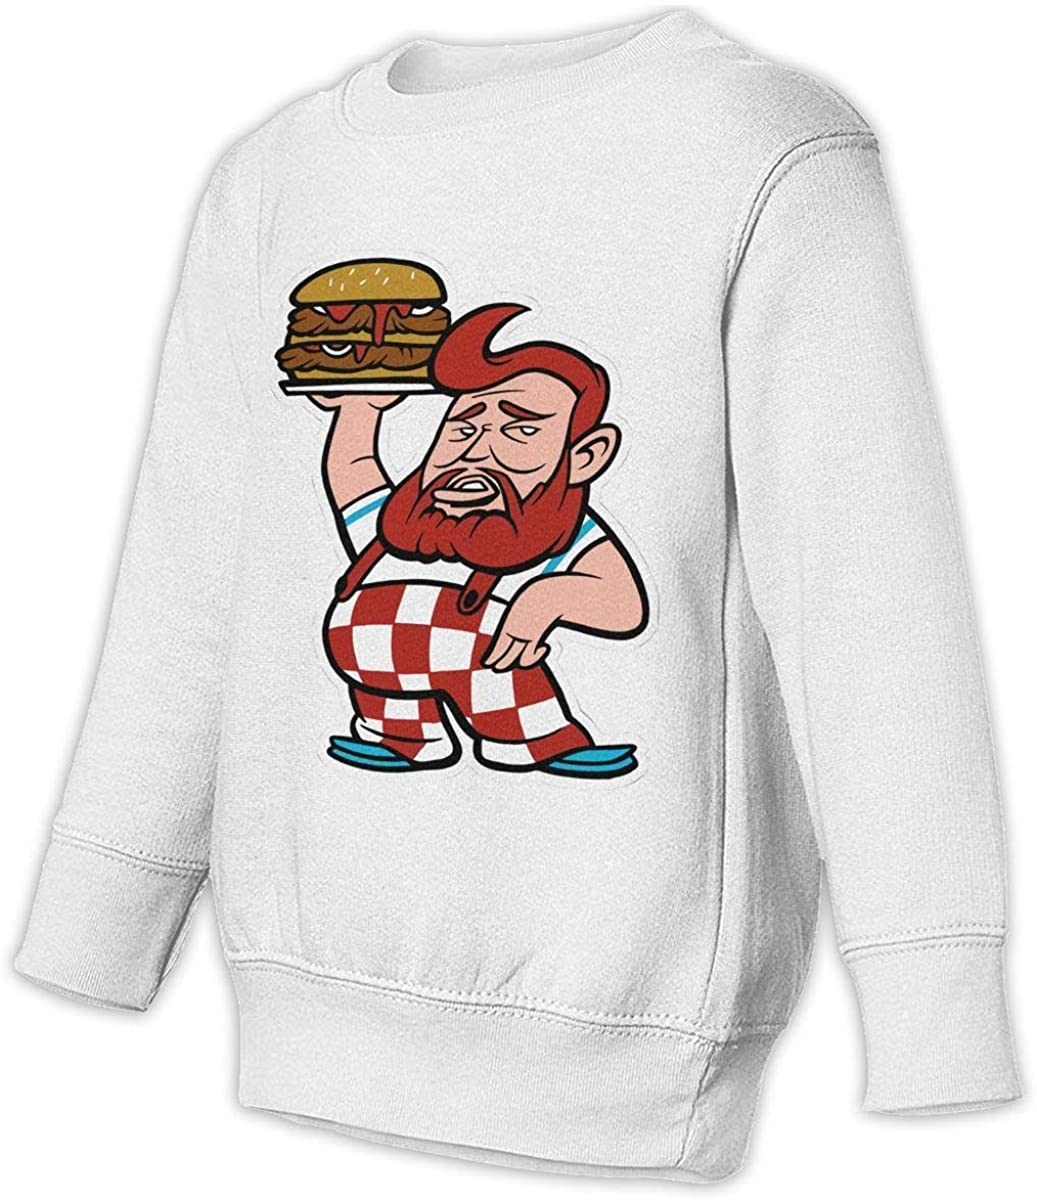 Vintage Action Bronson Burger Unisex Sweatshirt Youth Boy and Girls Pullover Sweatshirt White